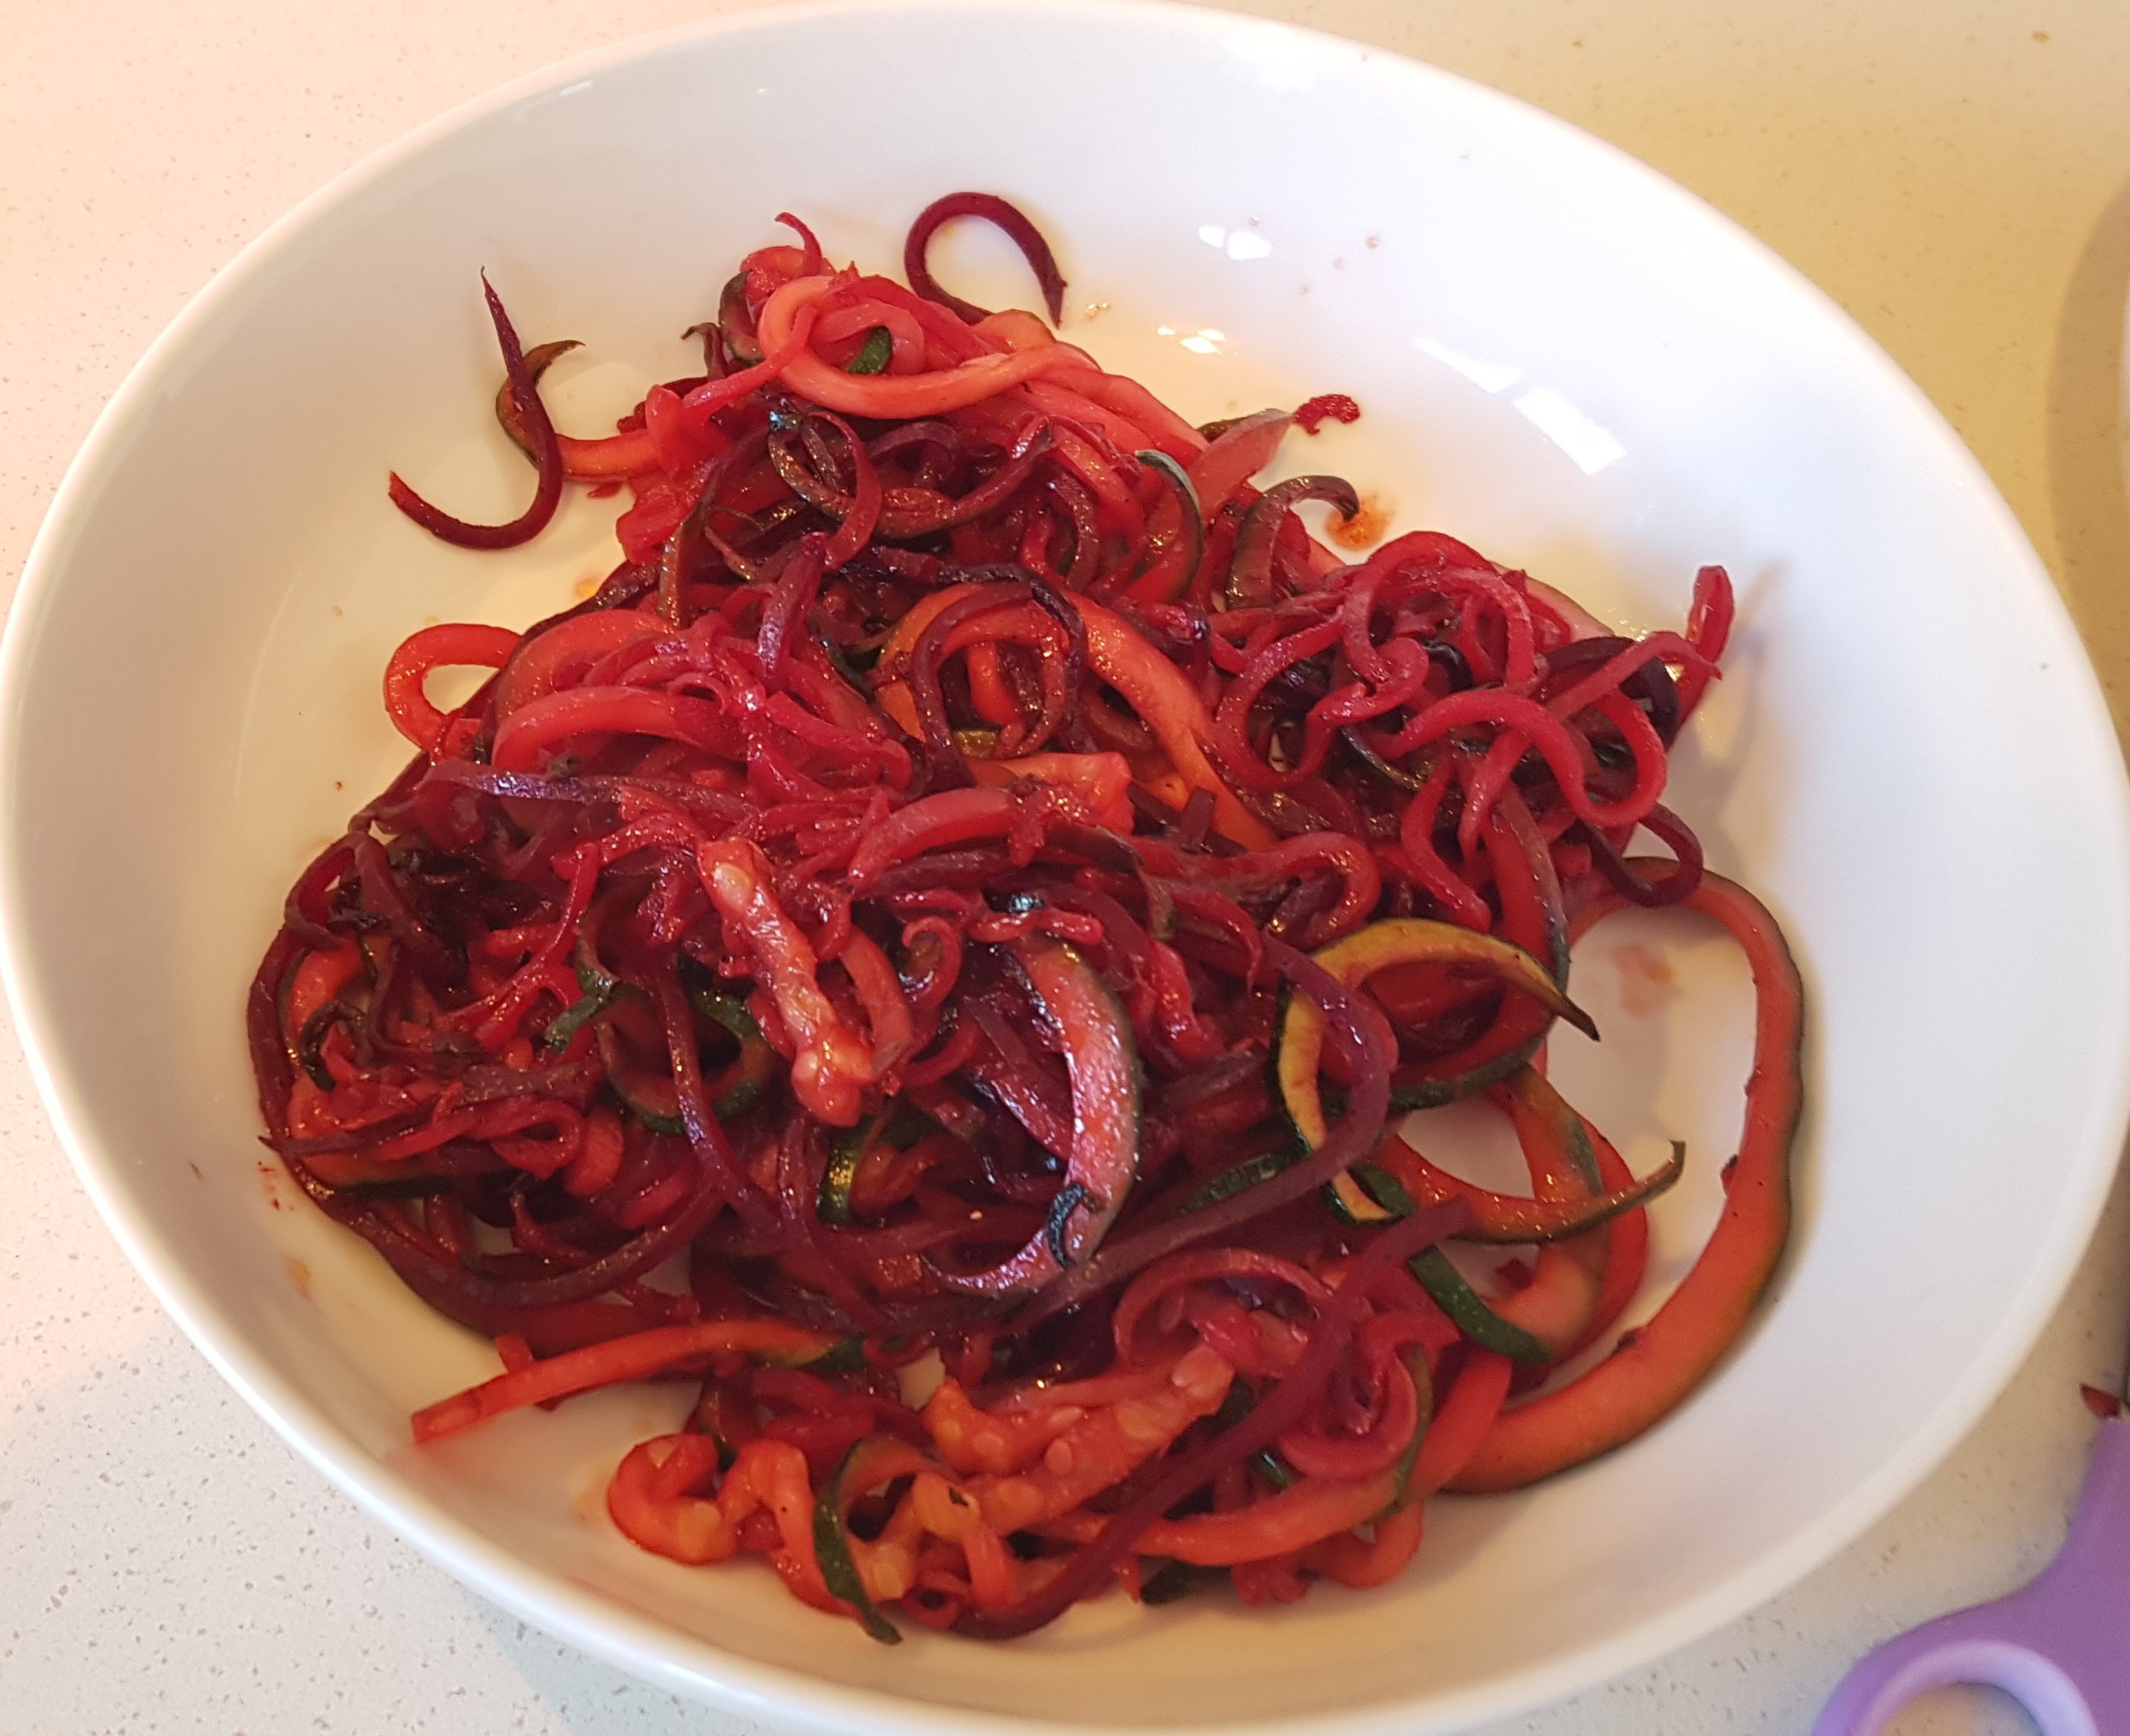 Spiralized veg